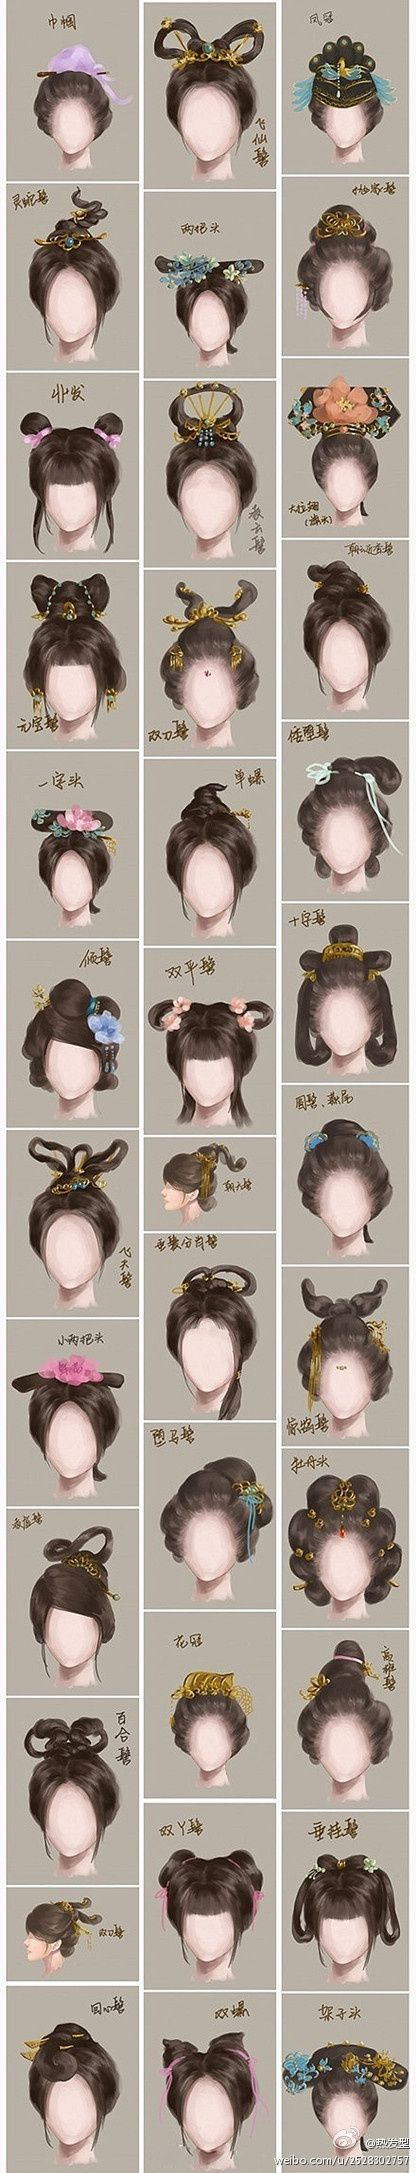 Beautiful Asian hairstyles   AHHH! Amazing!   <3